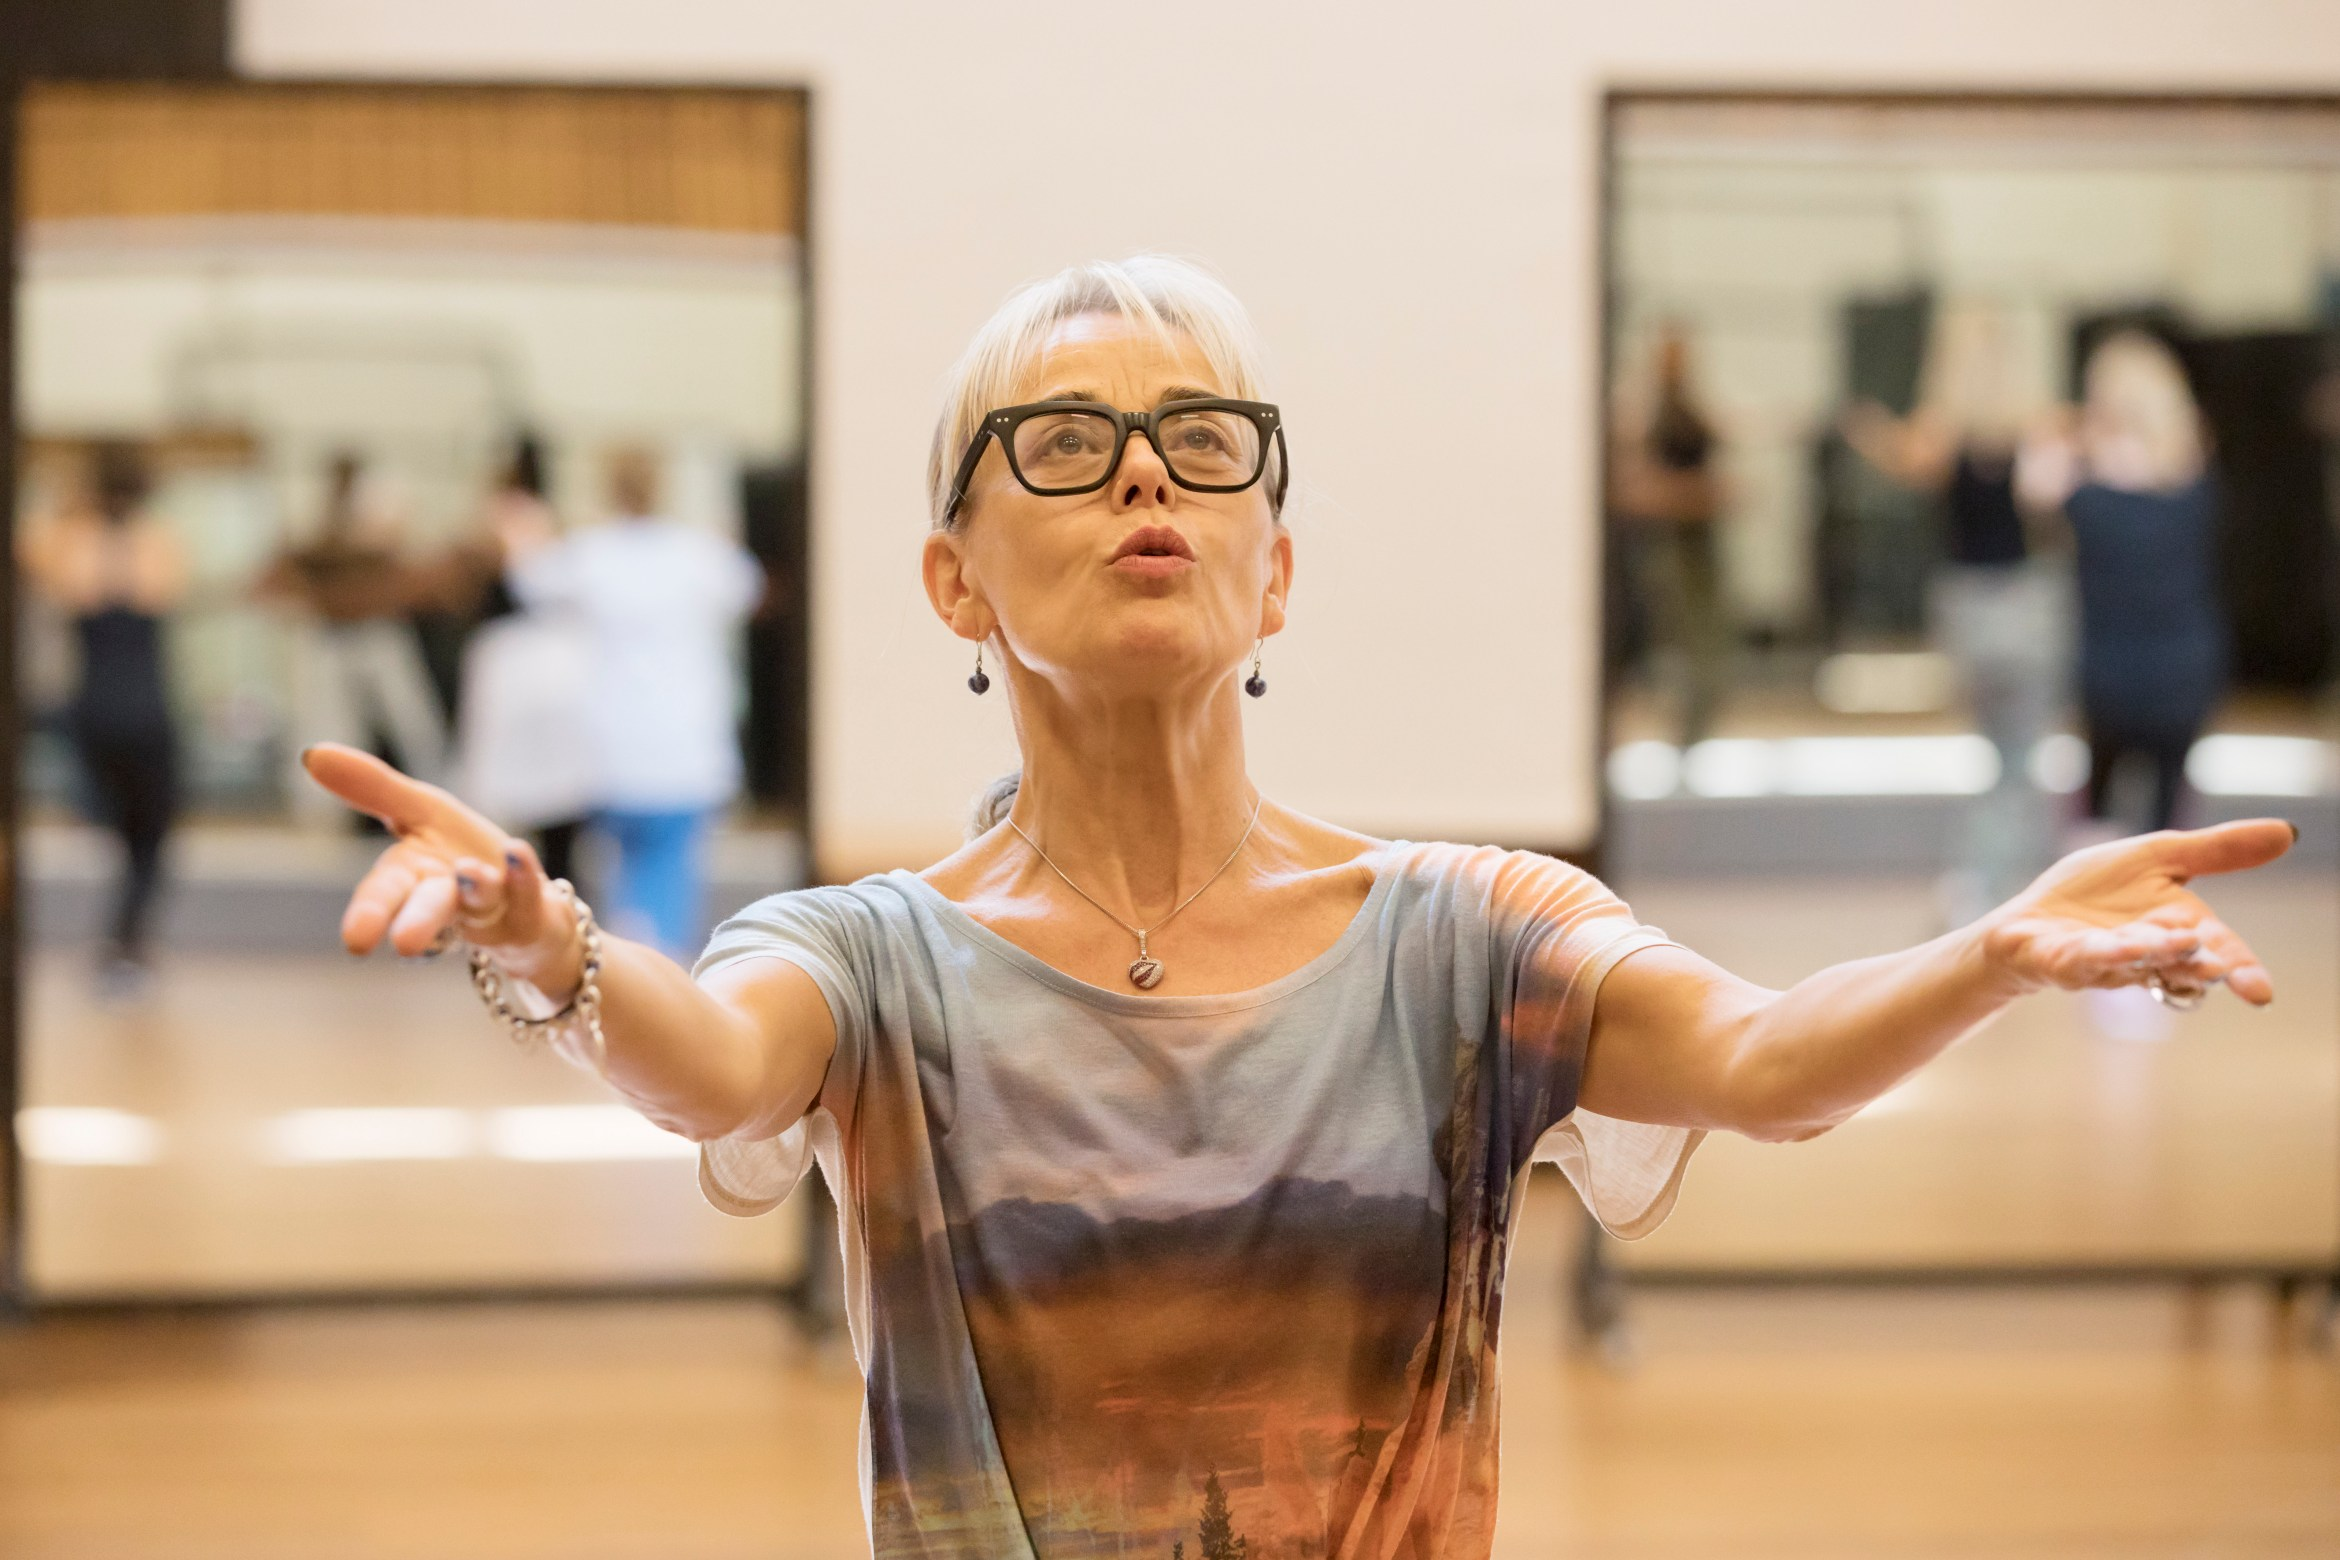 3. Tracie Bennett FOLLIES - photo by Johan Persson